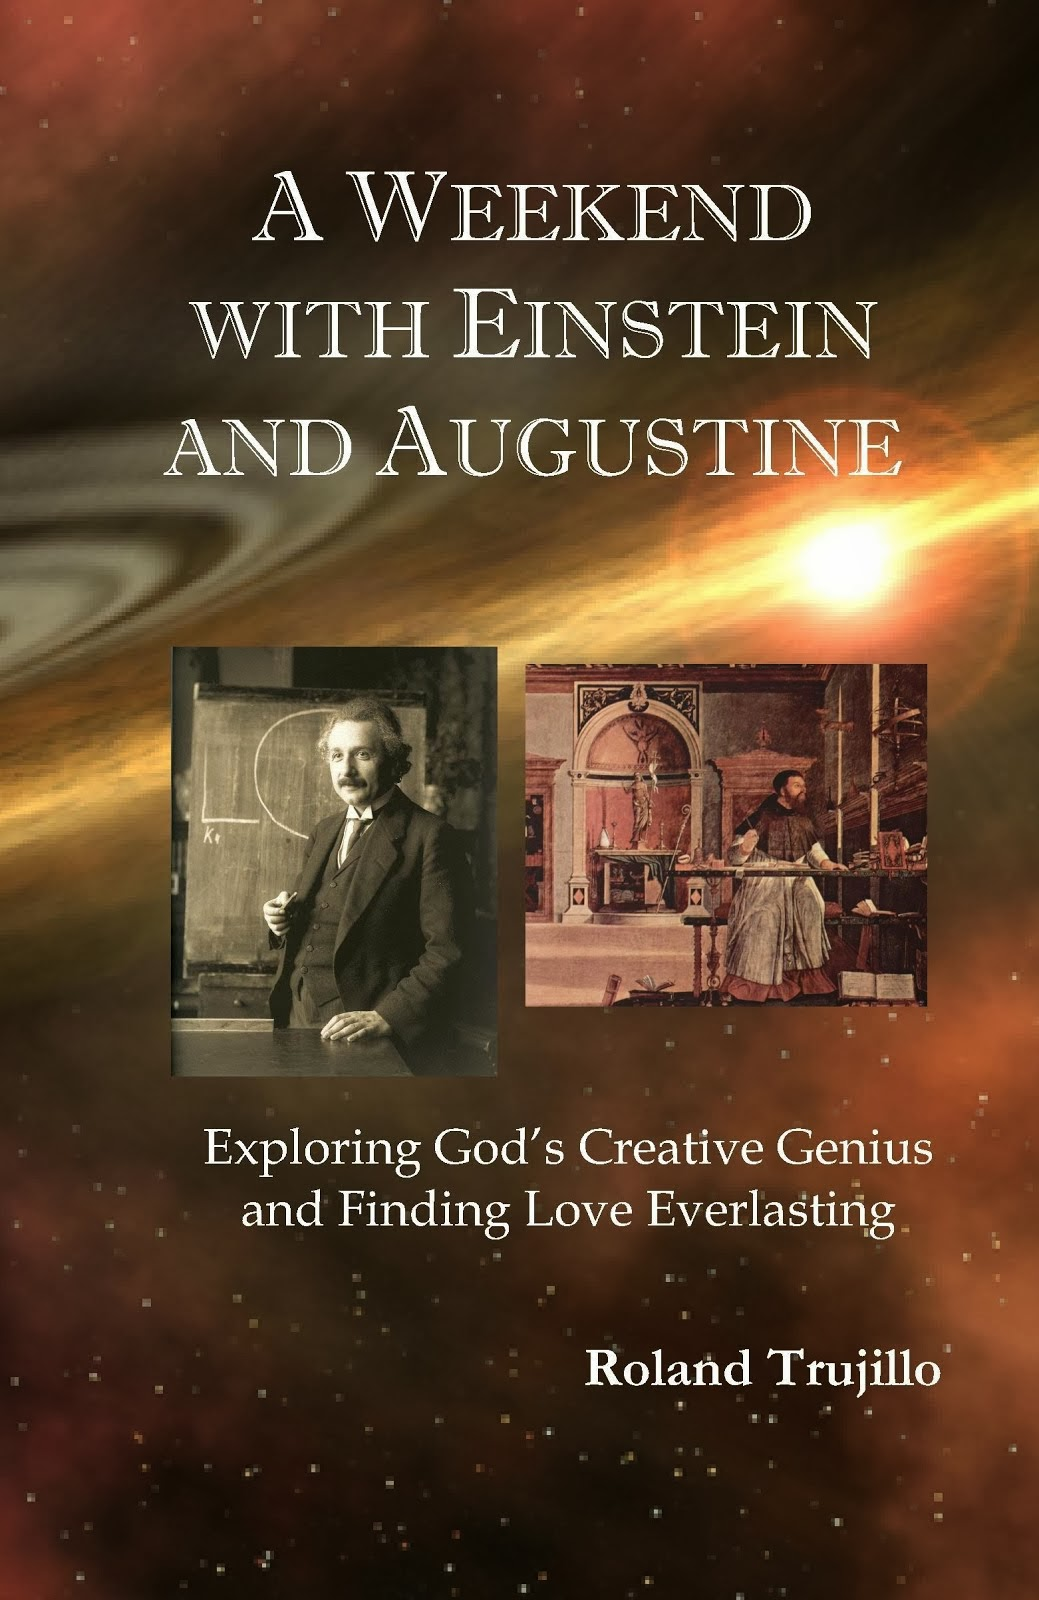 Read about Albert Einstein's Intuition